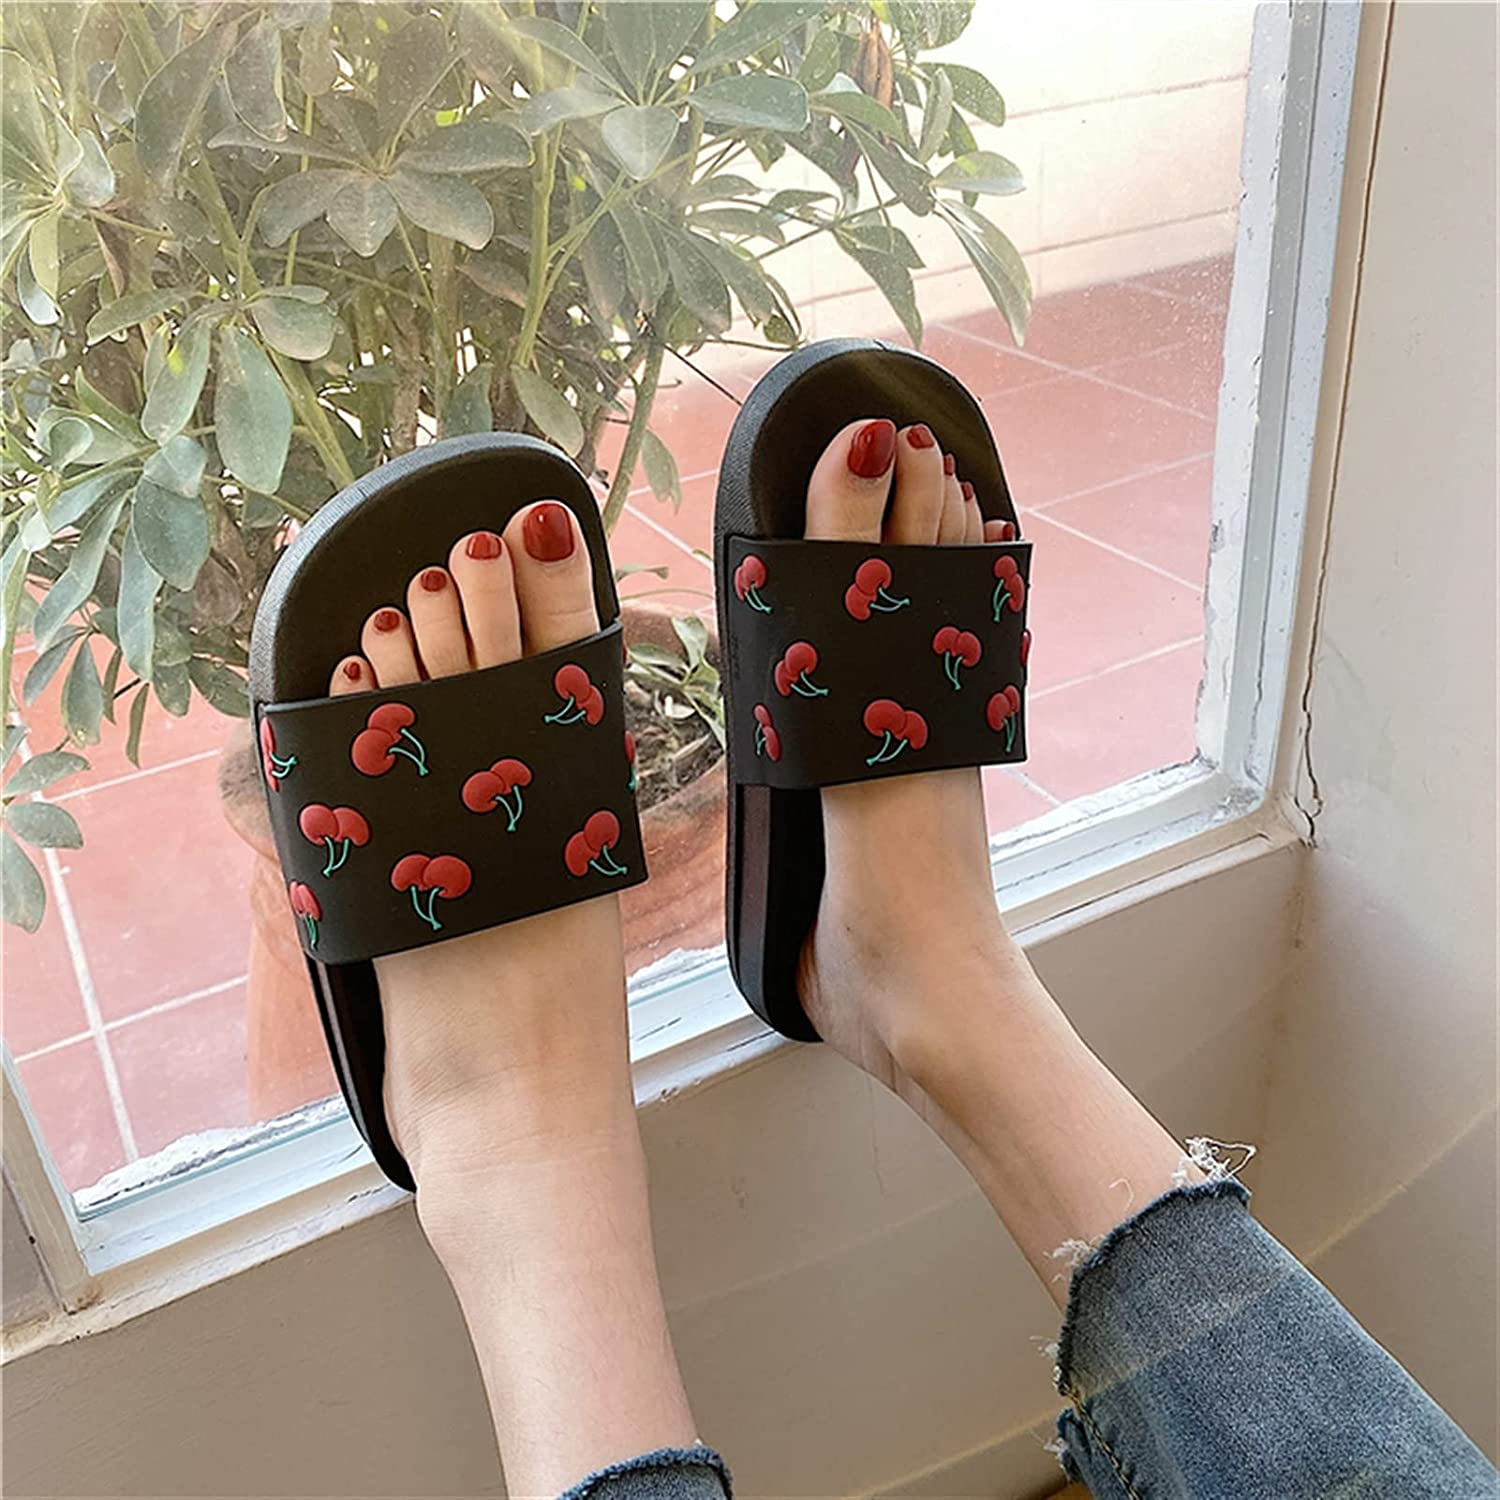 Yuncheng Pillow Cheap mail order specialty store Slides Slippers Cartoon Bottom Thick O Max 76% OFF Cherry 3D